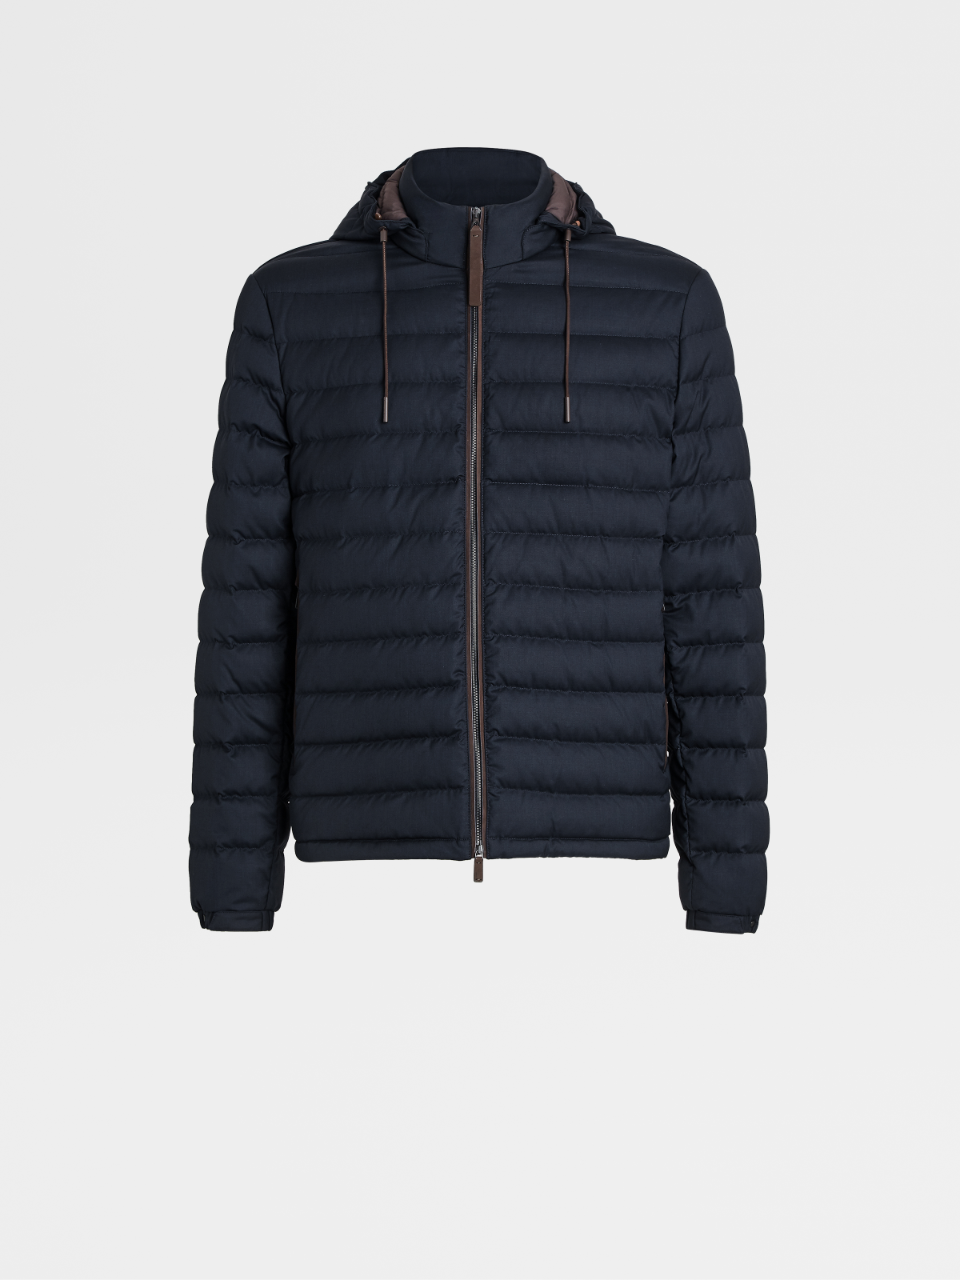 Leggerissimo Wool And Silk Down Jacket